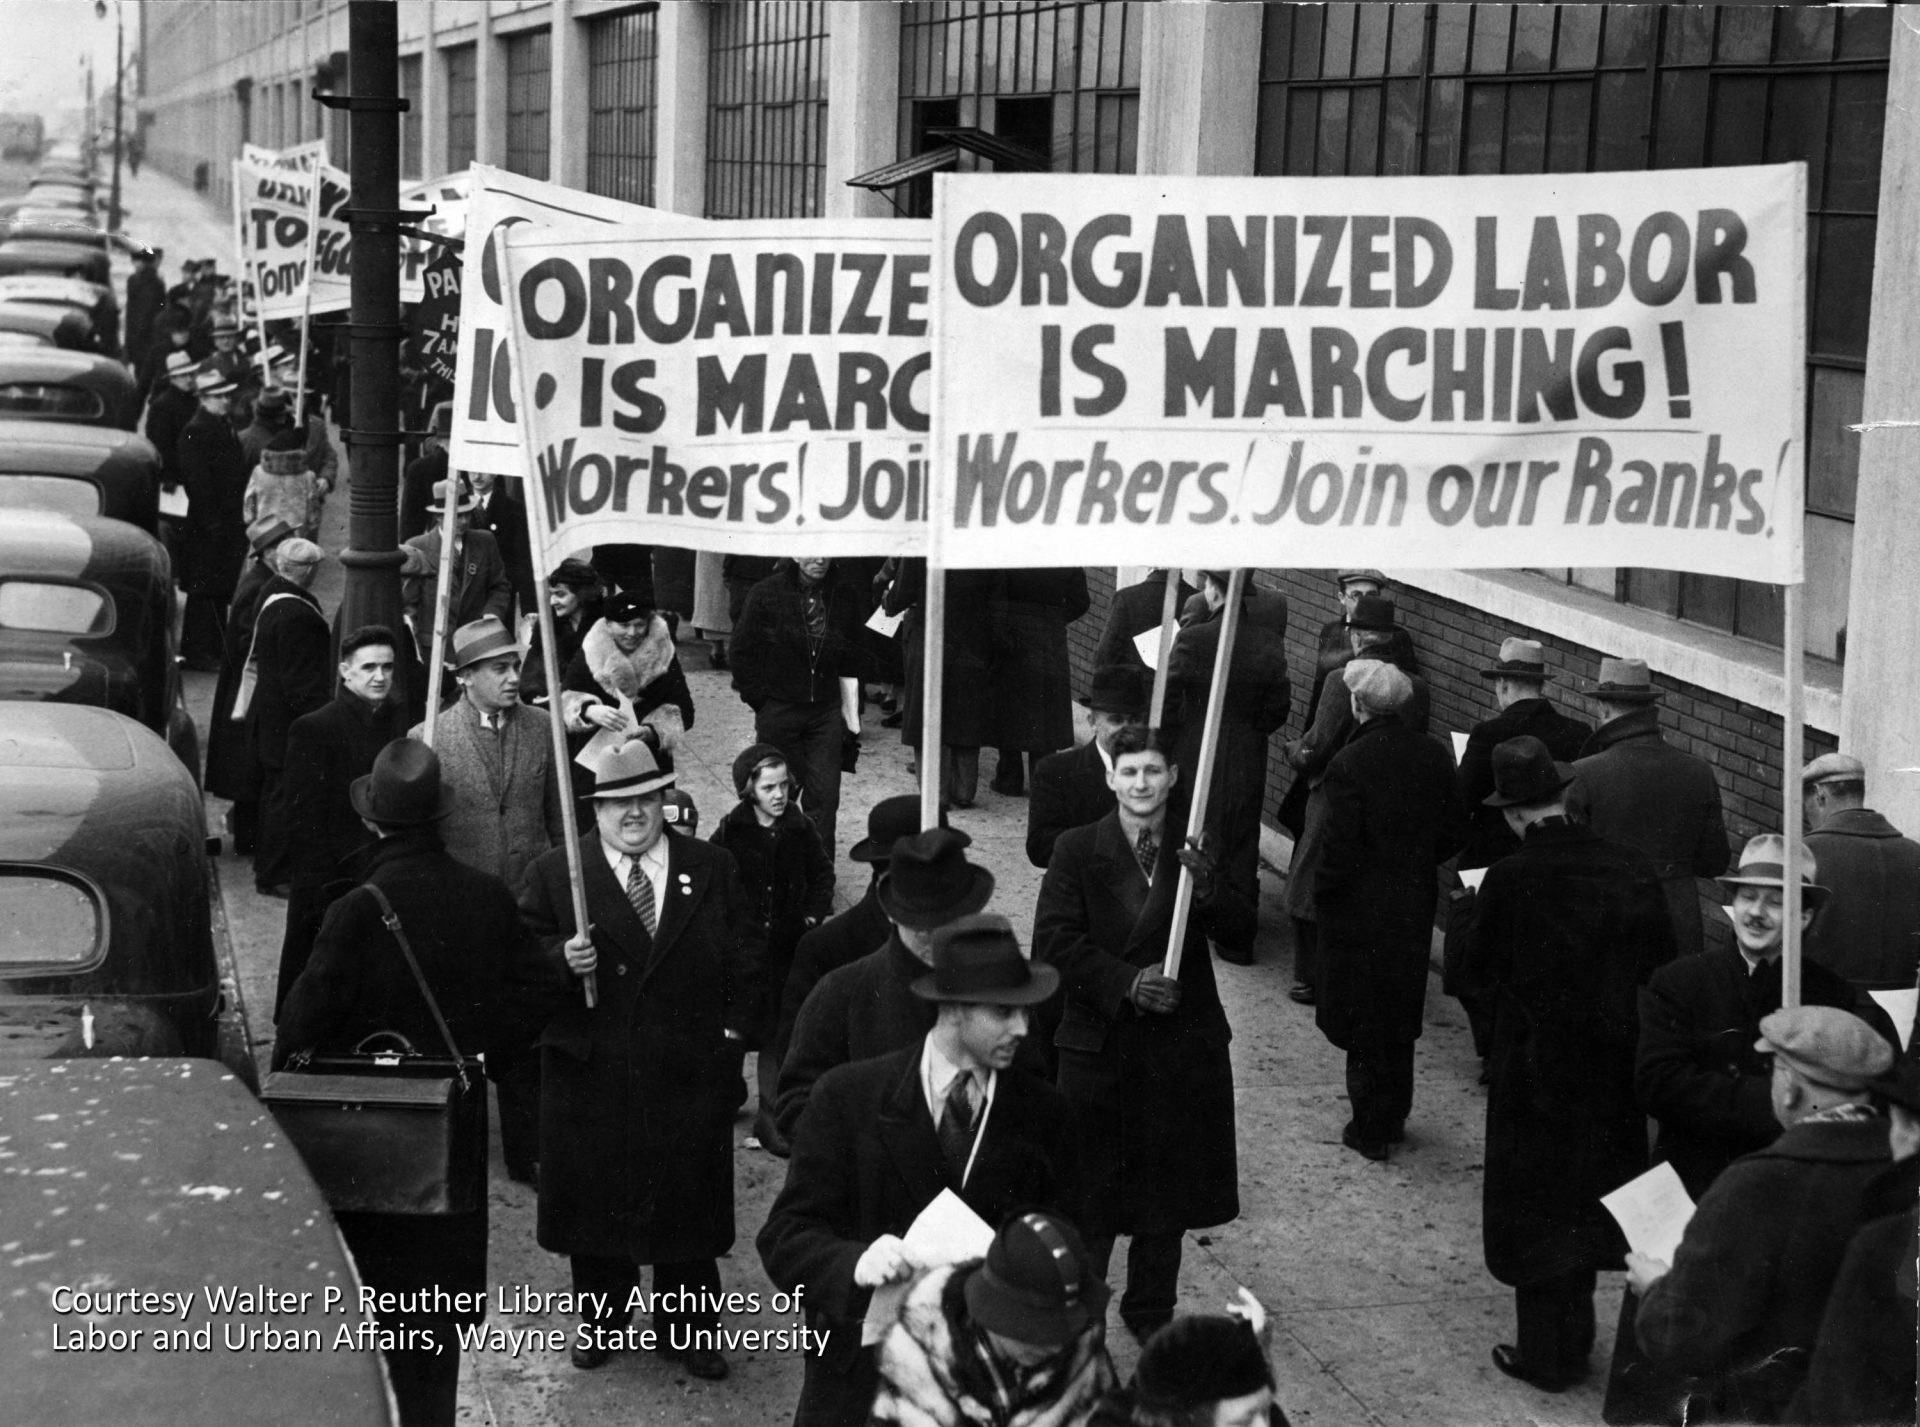 Autoworkers in Detroit and around the country mobilized in the 1930s to achieve collective bargaining rights. Chrysler and General Motors accepted the newly-formed United Autoworkers into their plants in 1937, but Henry Ford refused to acknowledge the UAW. It would be another four years before Ford, encouraged by his wife Clara, would accept the UAW. Courtesy Walter P. Reuther Library, Archives of Labor and Urban Affairs, Wayne State University